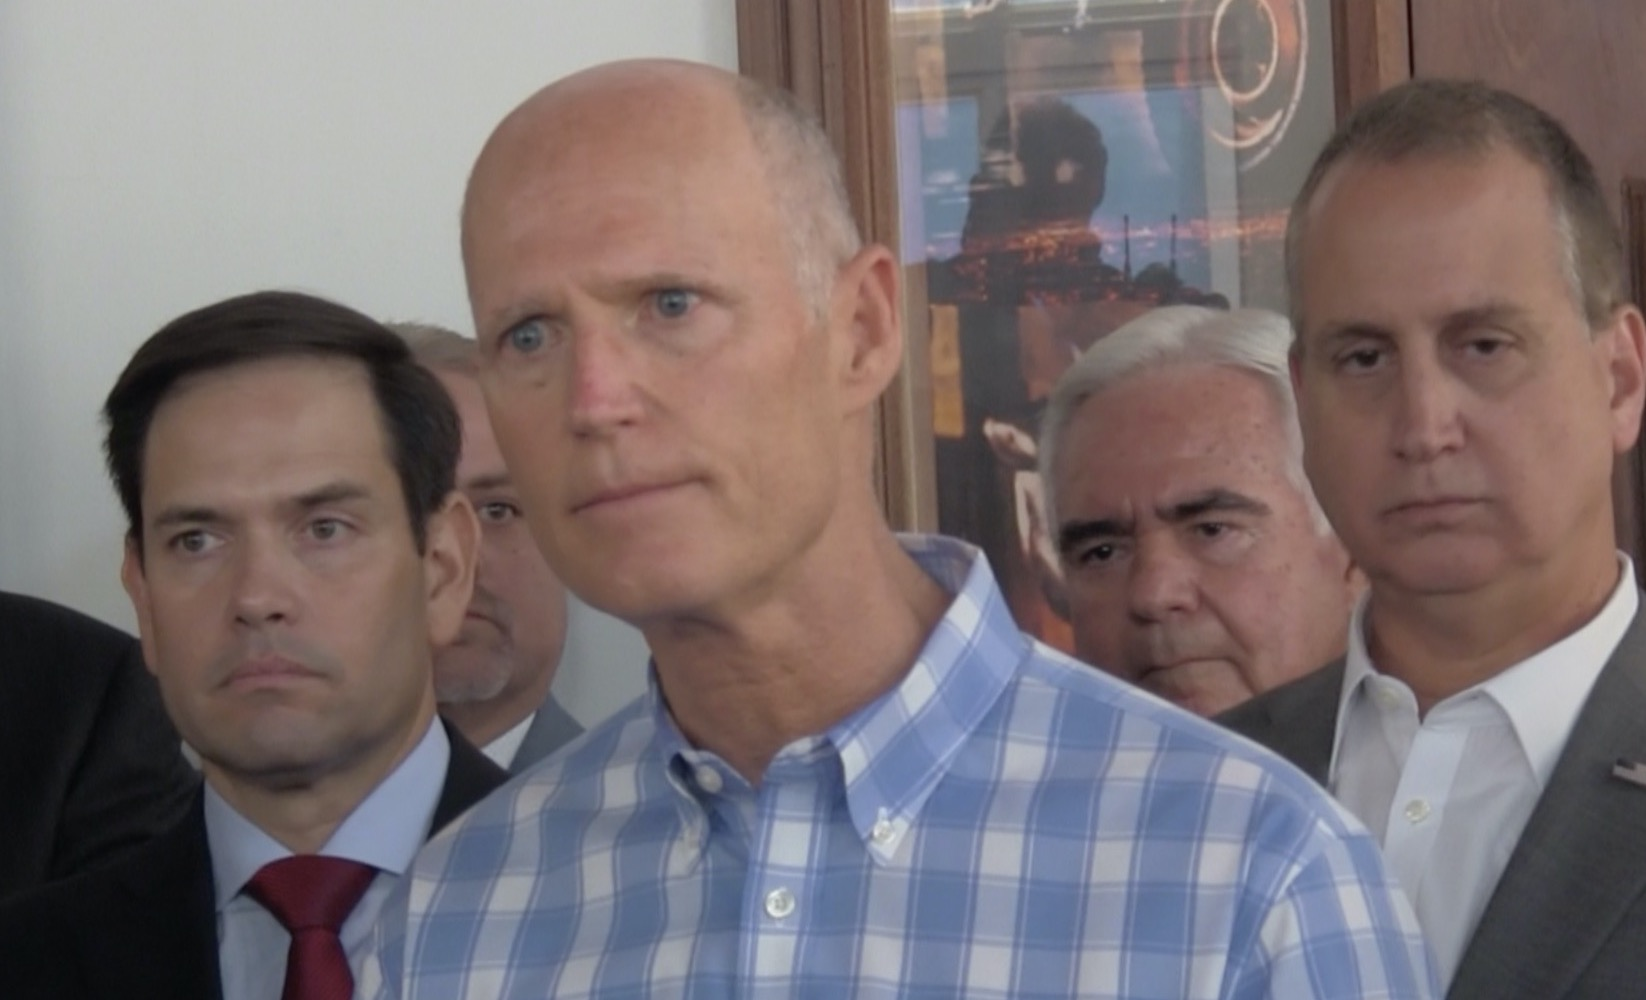 Rick Scott to consider bill making domestic terrorism a federal crime